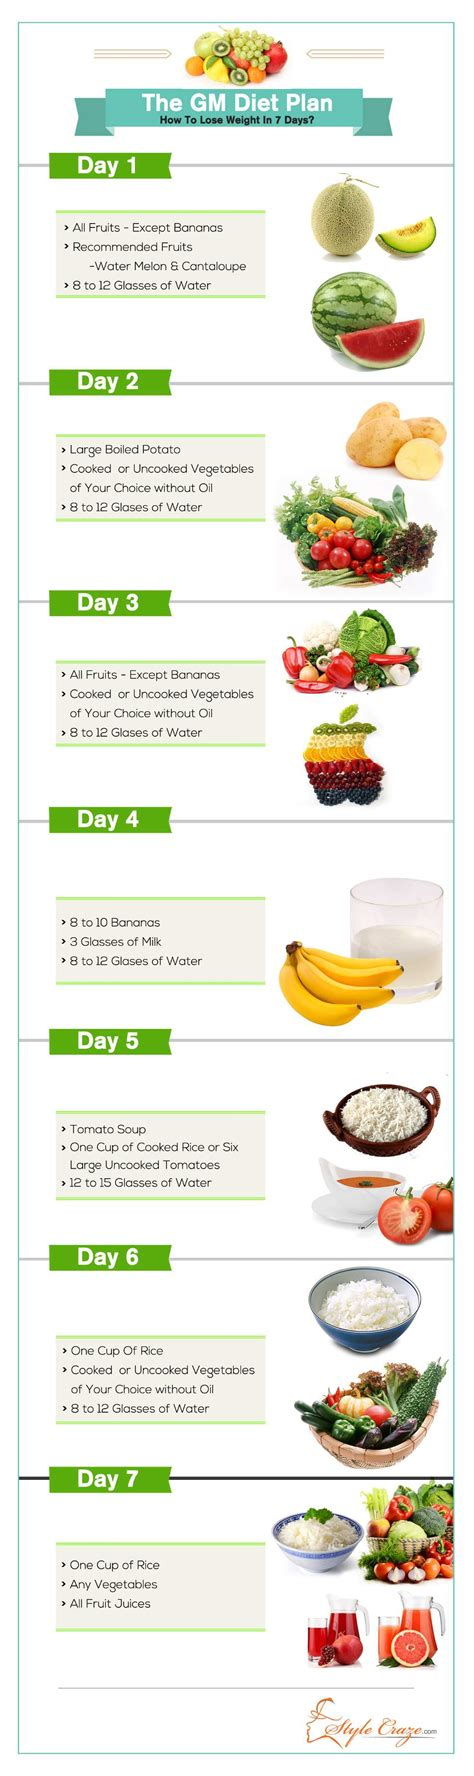 Meatless Detox Diet by Gm Diet Lose Weight In 7 Days Heavy